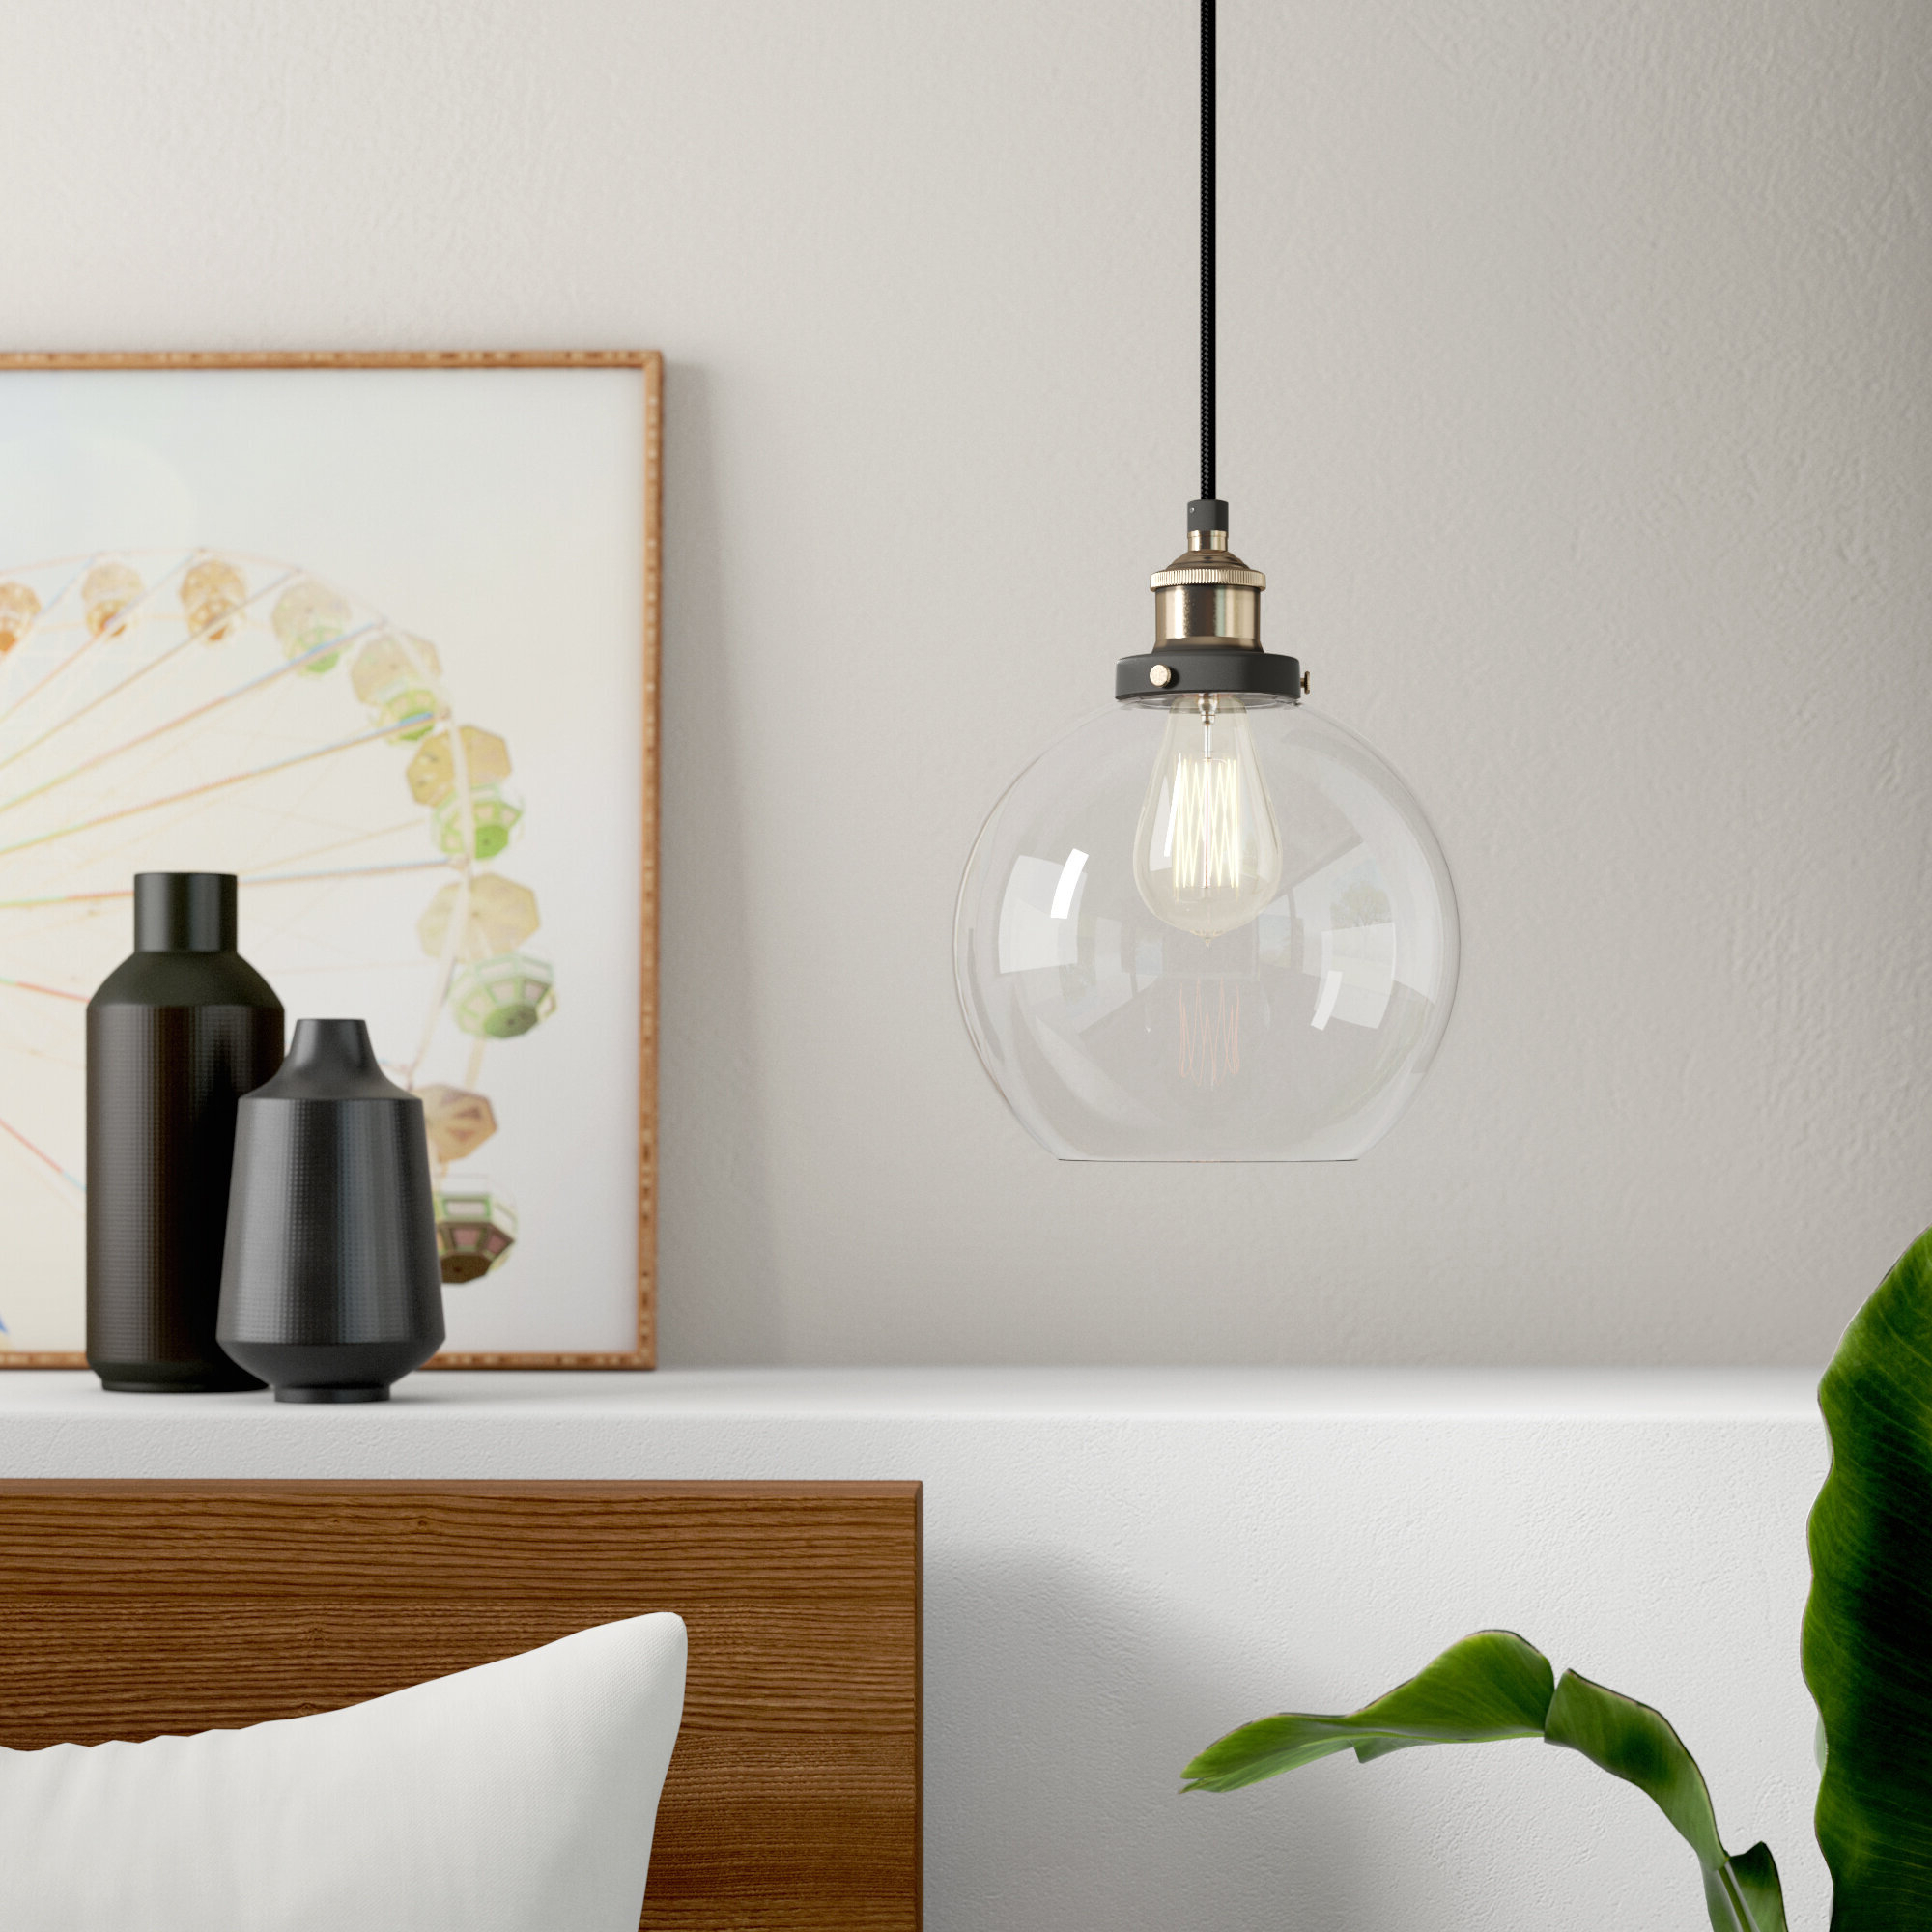 Famous Bundy 1 Light Single Globe Pendant With Gehry 1 Light Single Globe Pendants (View 4 of 20)